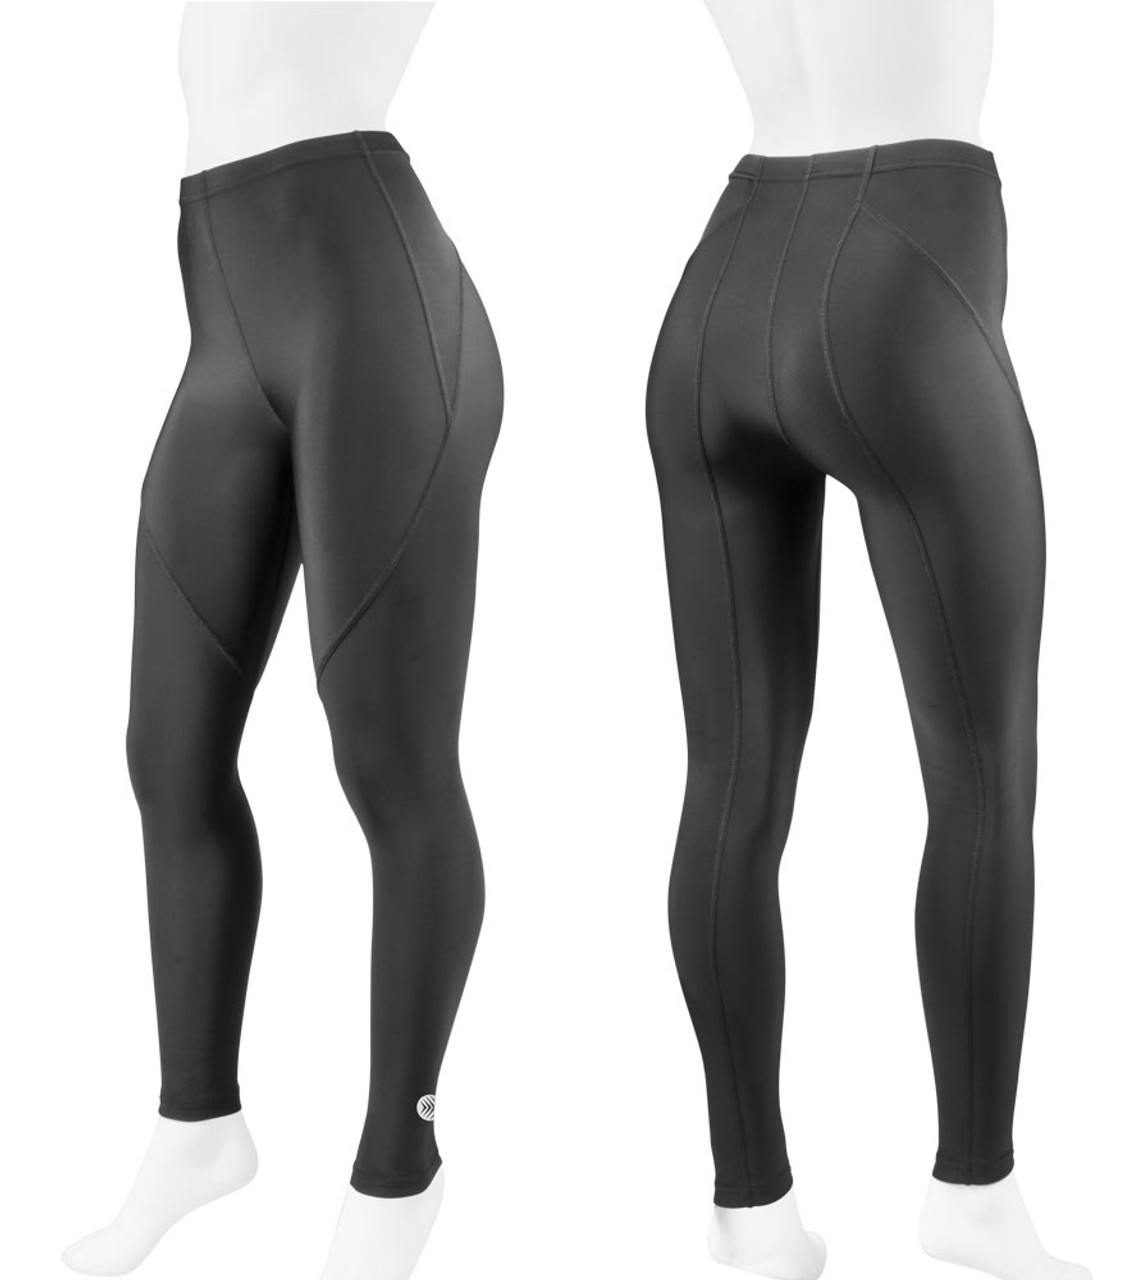 2dd7e23087 Women's Triumph Black Compression Workout Tights by Aero Tech Designs